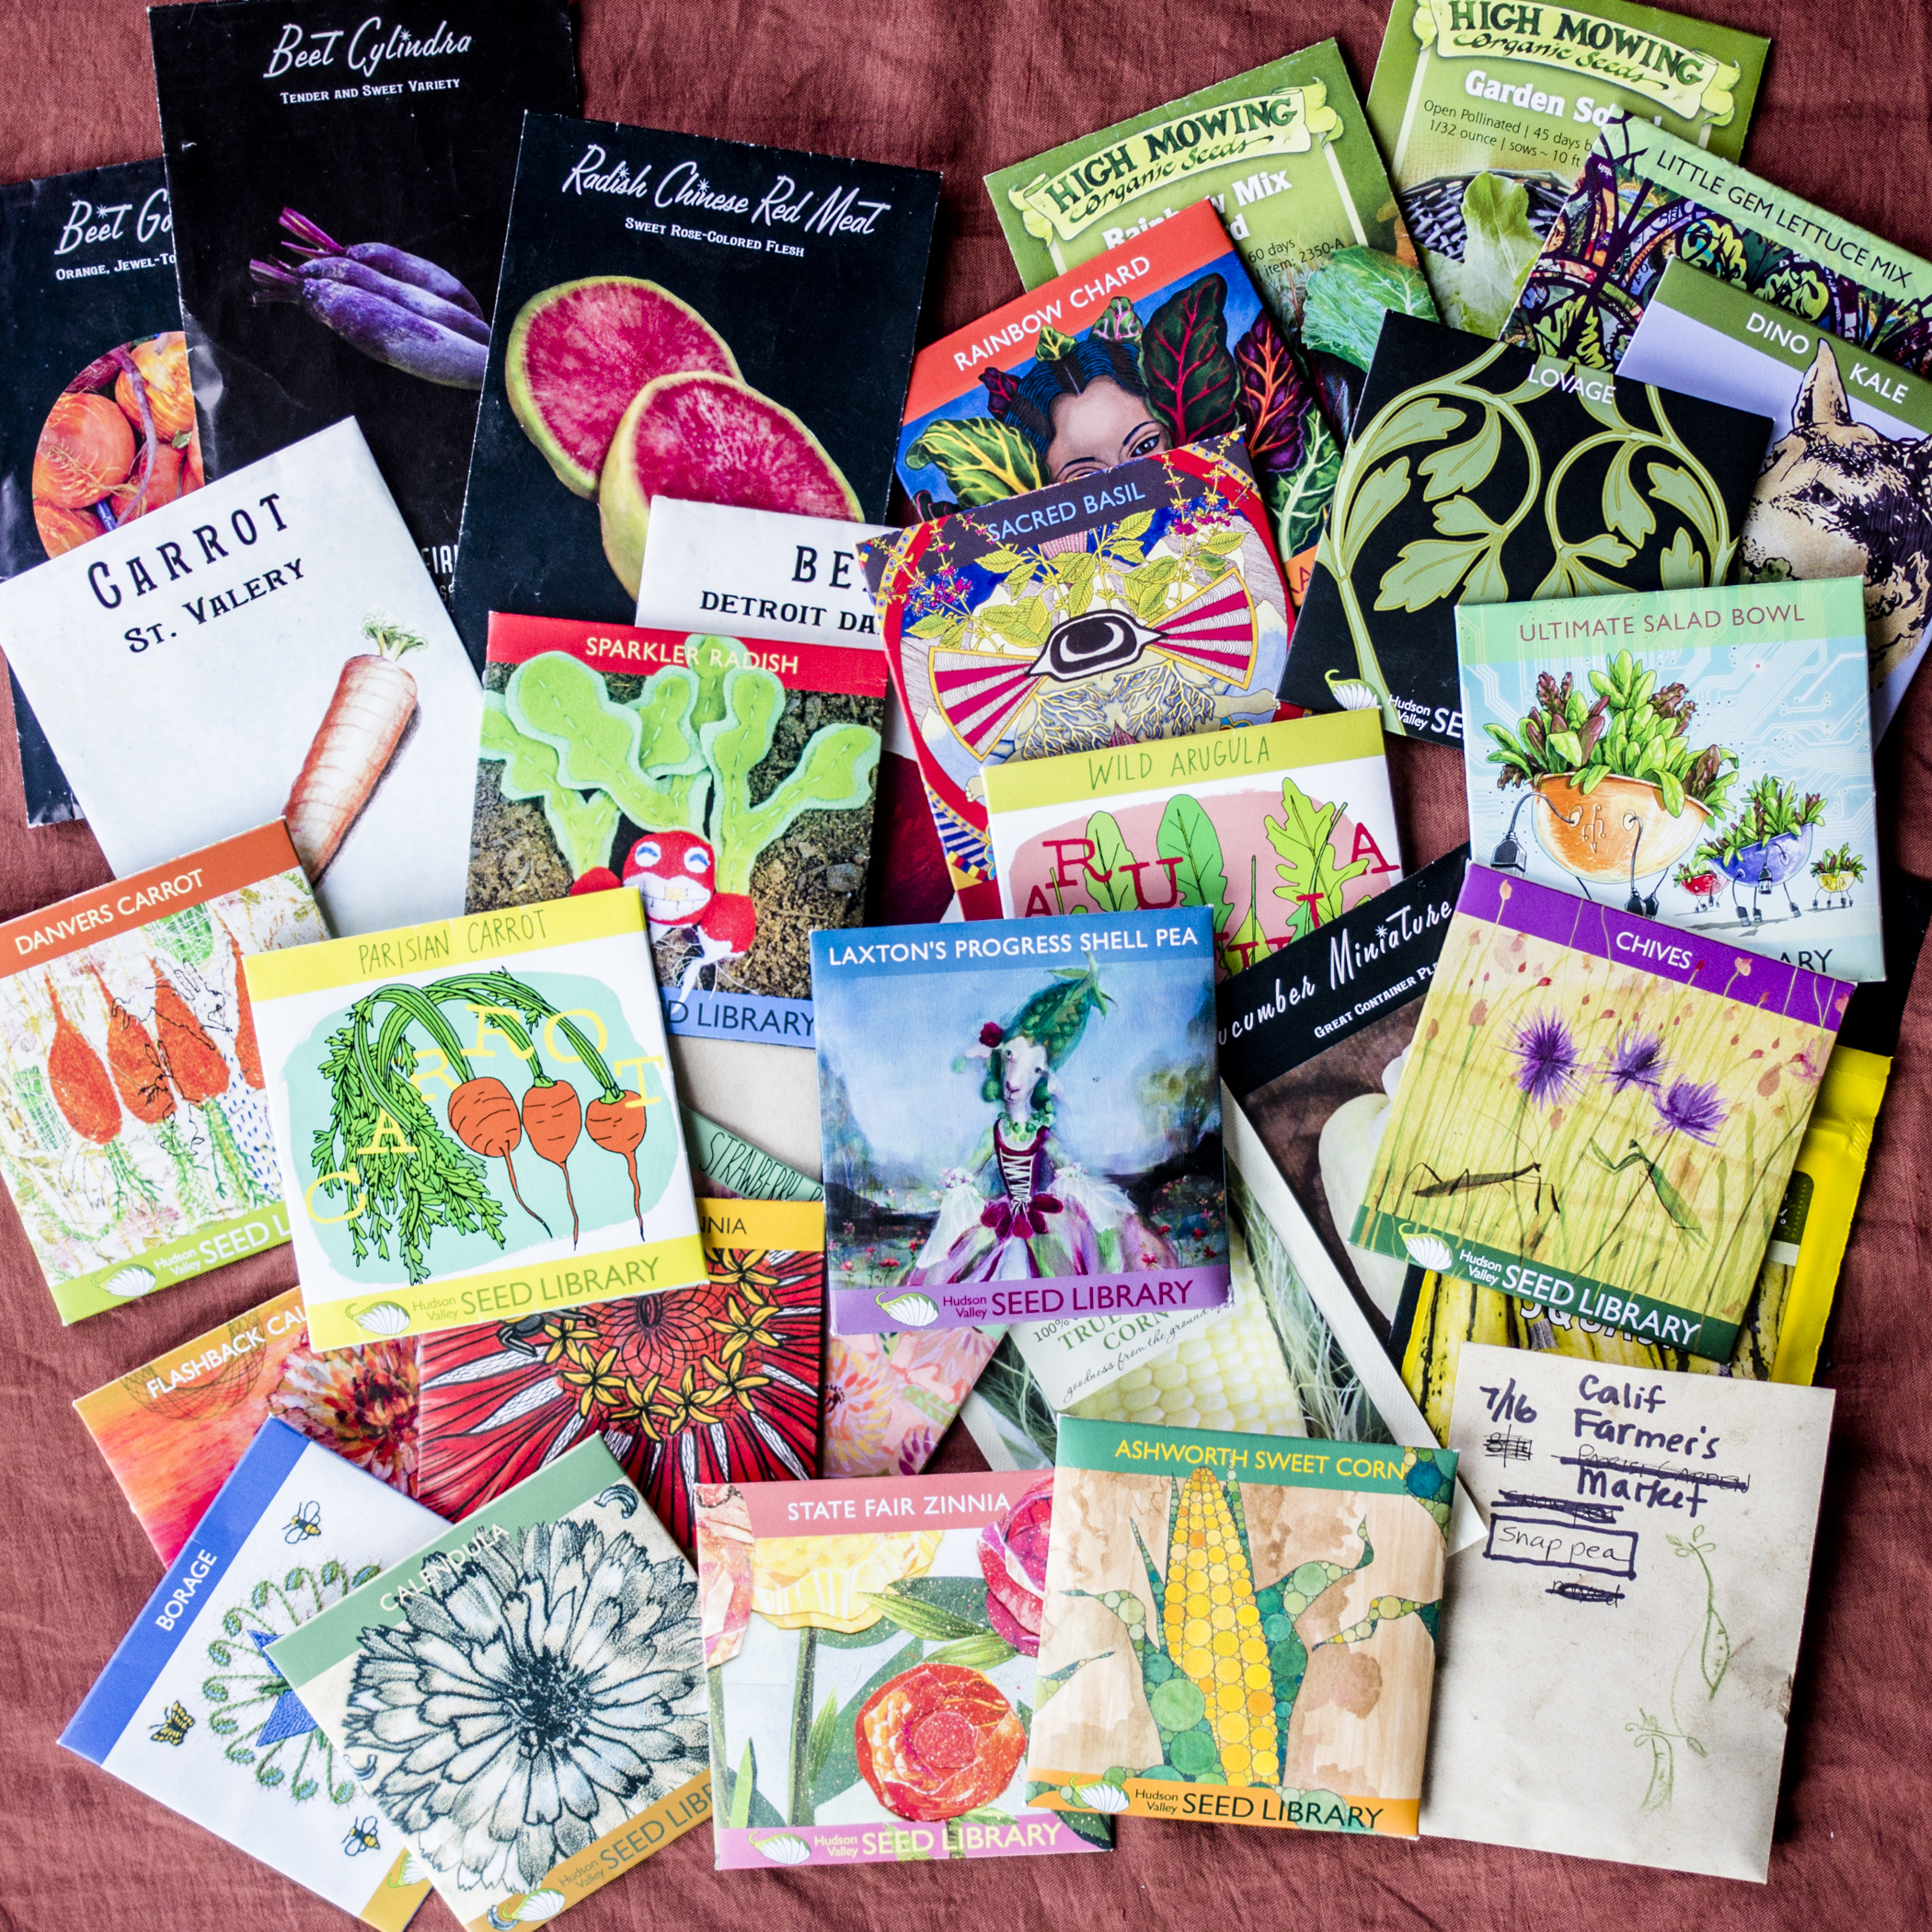 One of my favorite places to source seeds from is the   Hudson Valley Seed Library